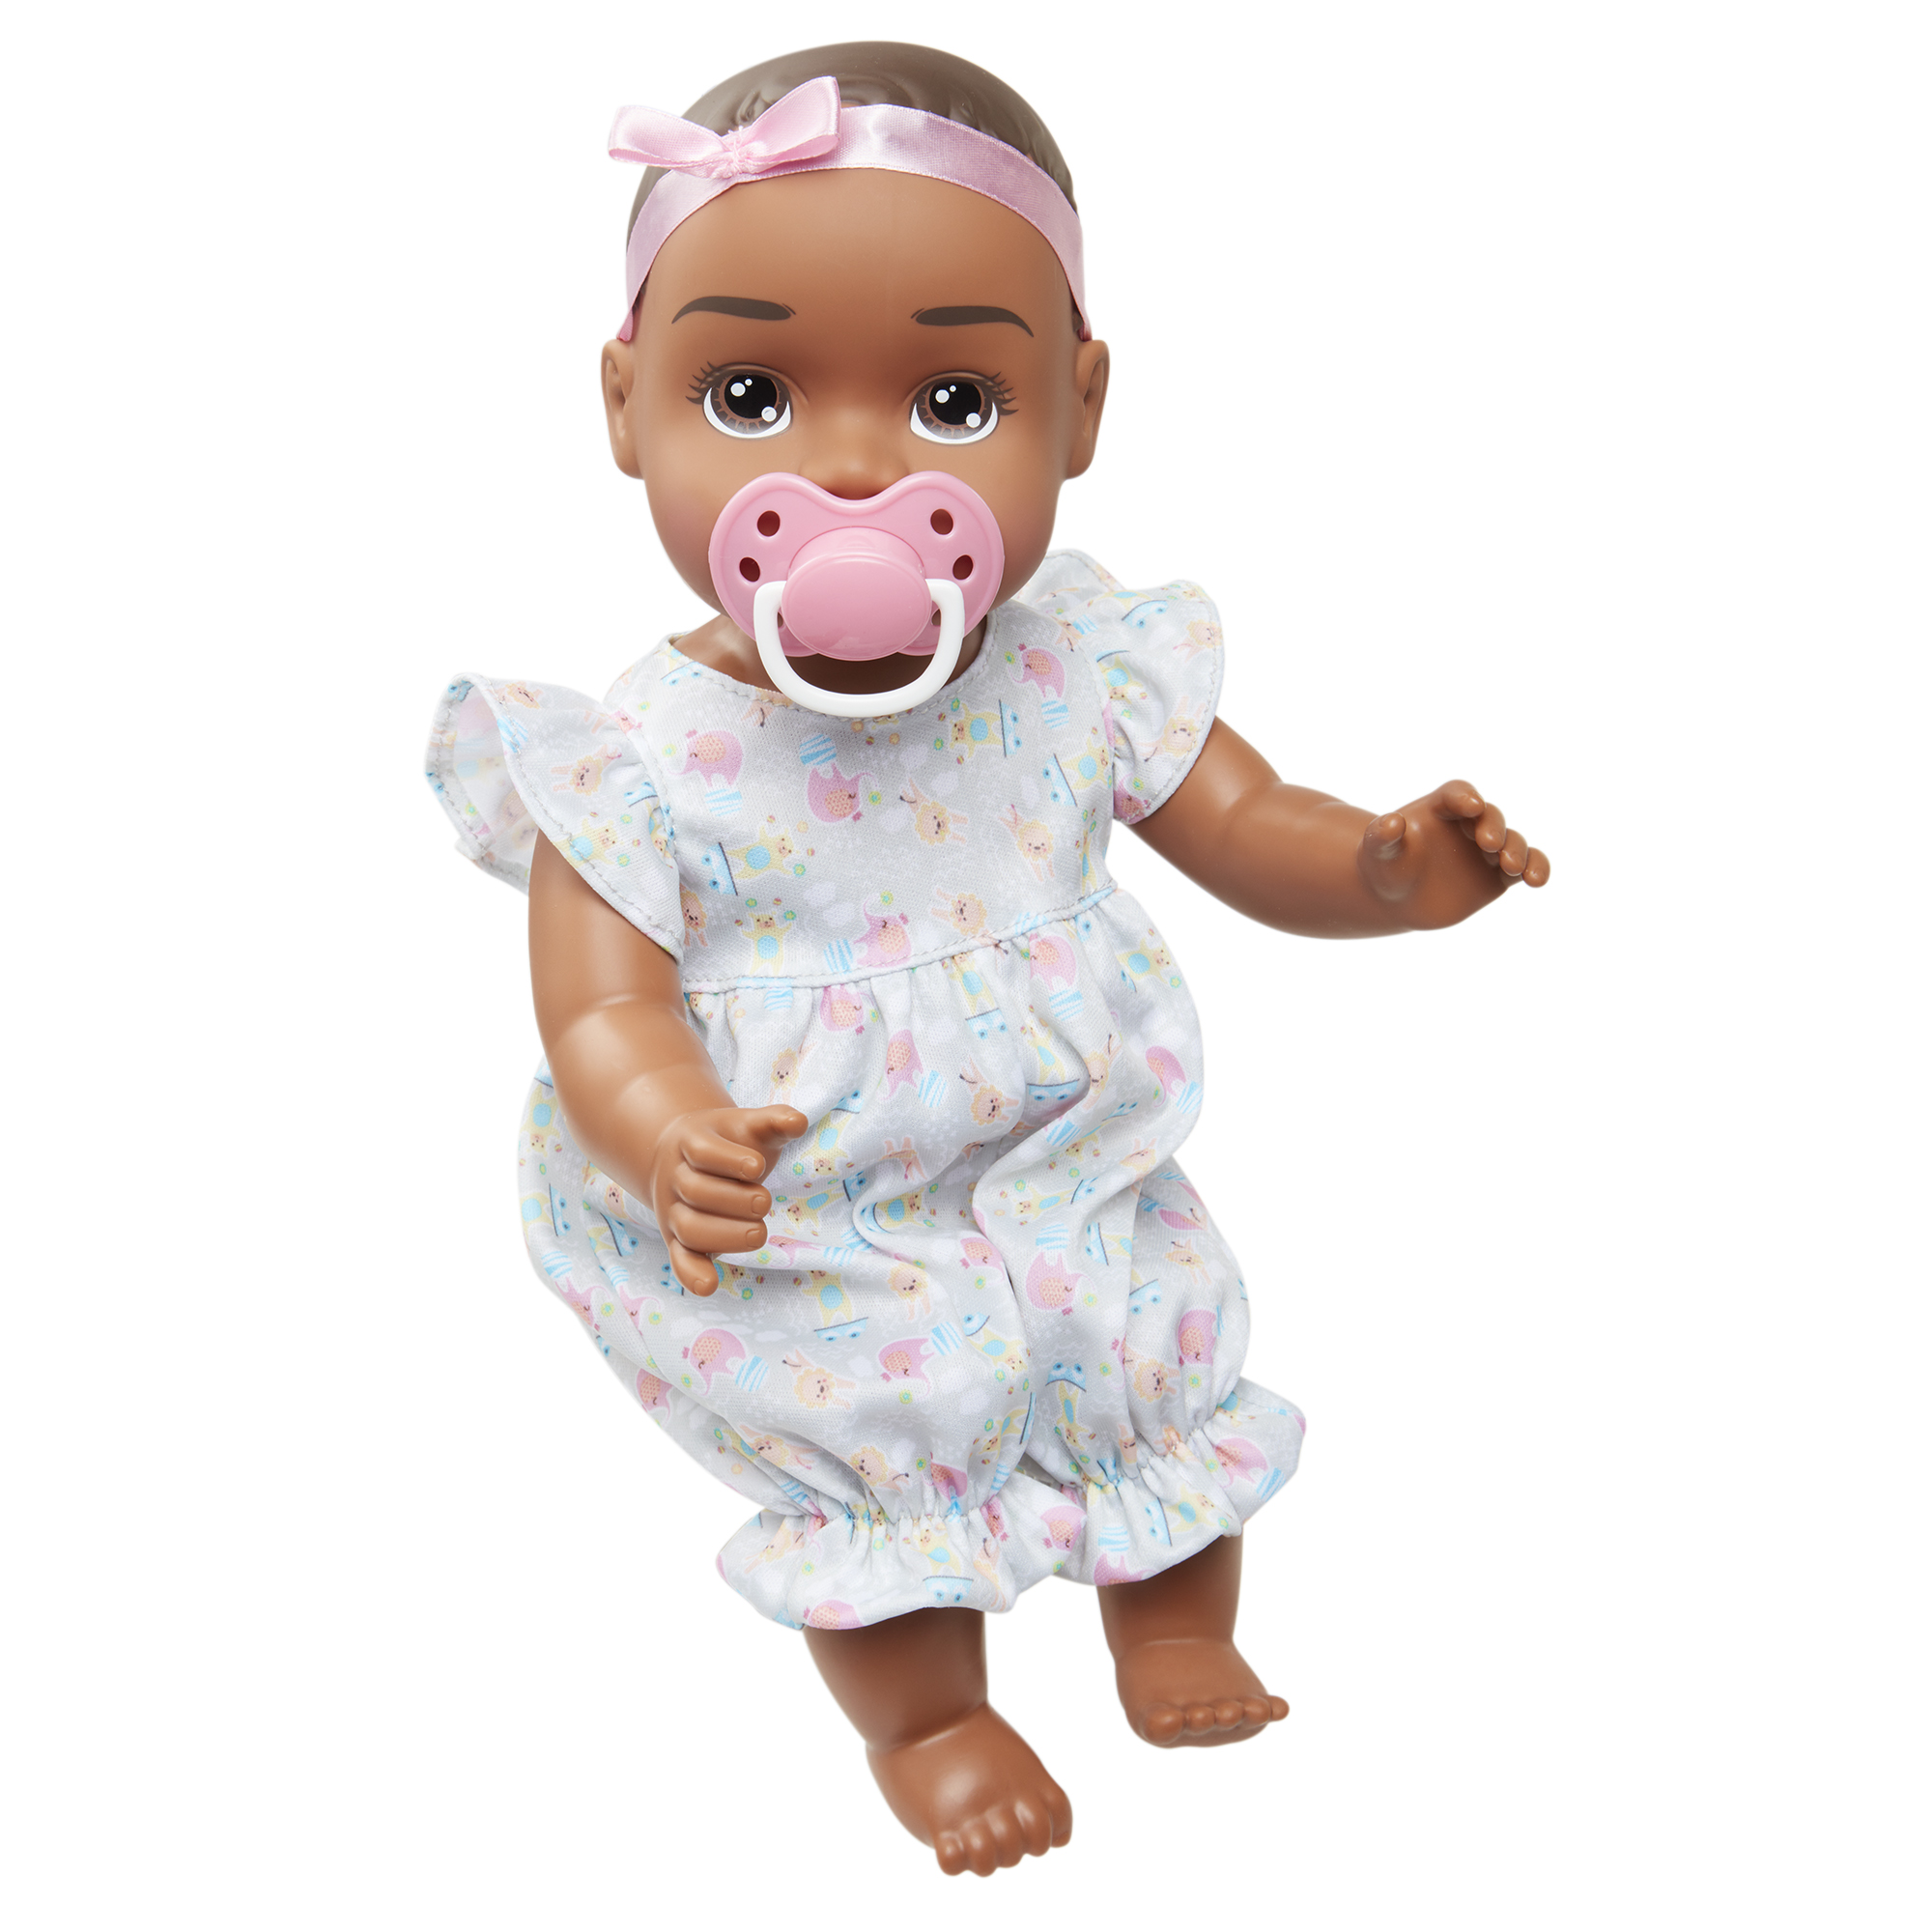 Perfectly Cute Baby Giggle Fun Baby 14 inch  Giggle Fun Girl Doll